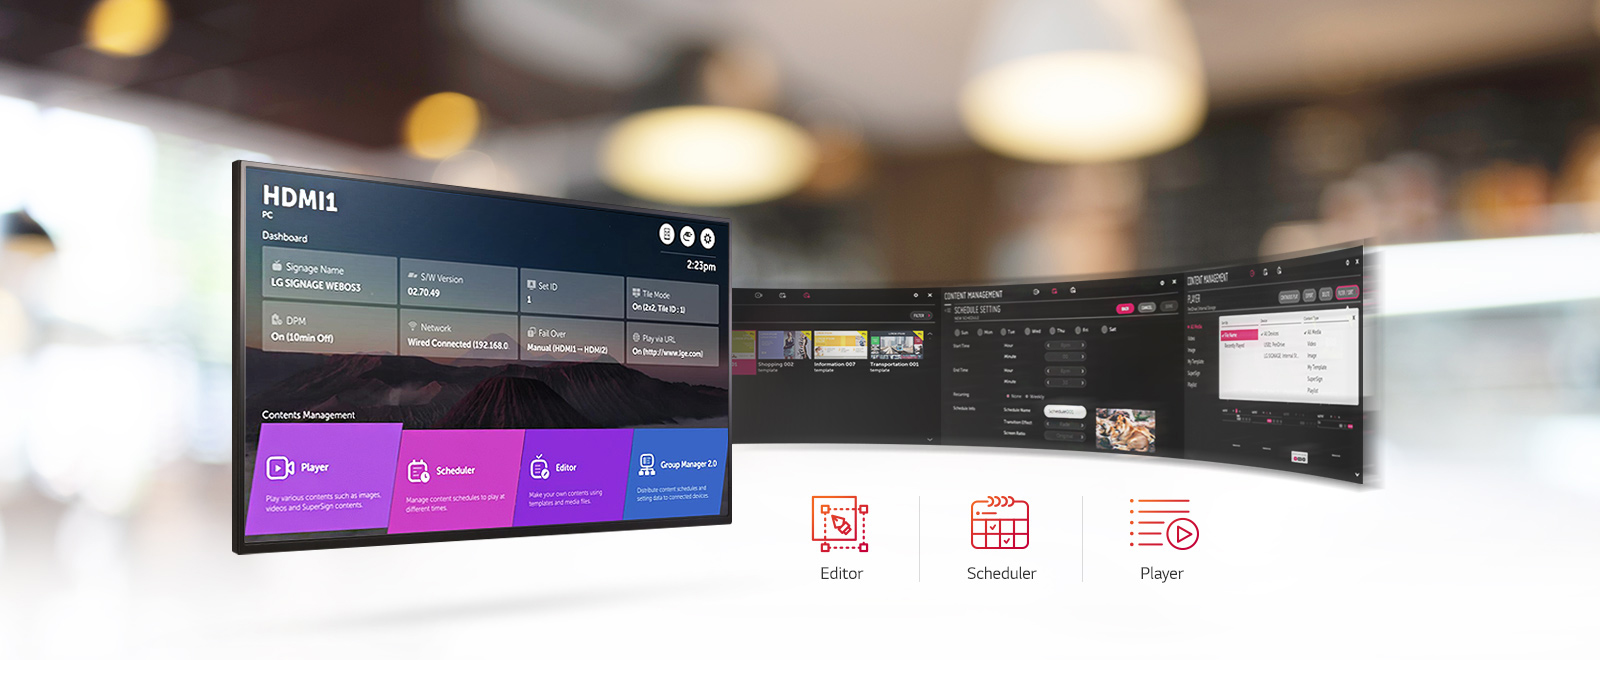 LG commercial displays showing editor, scheduler and player features